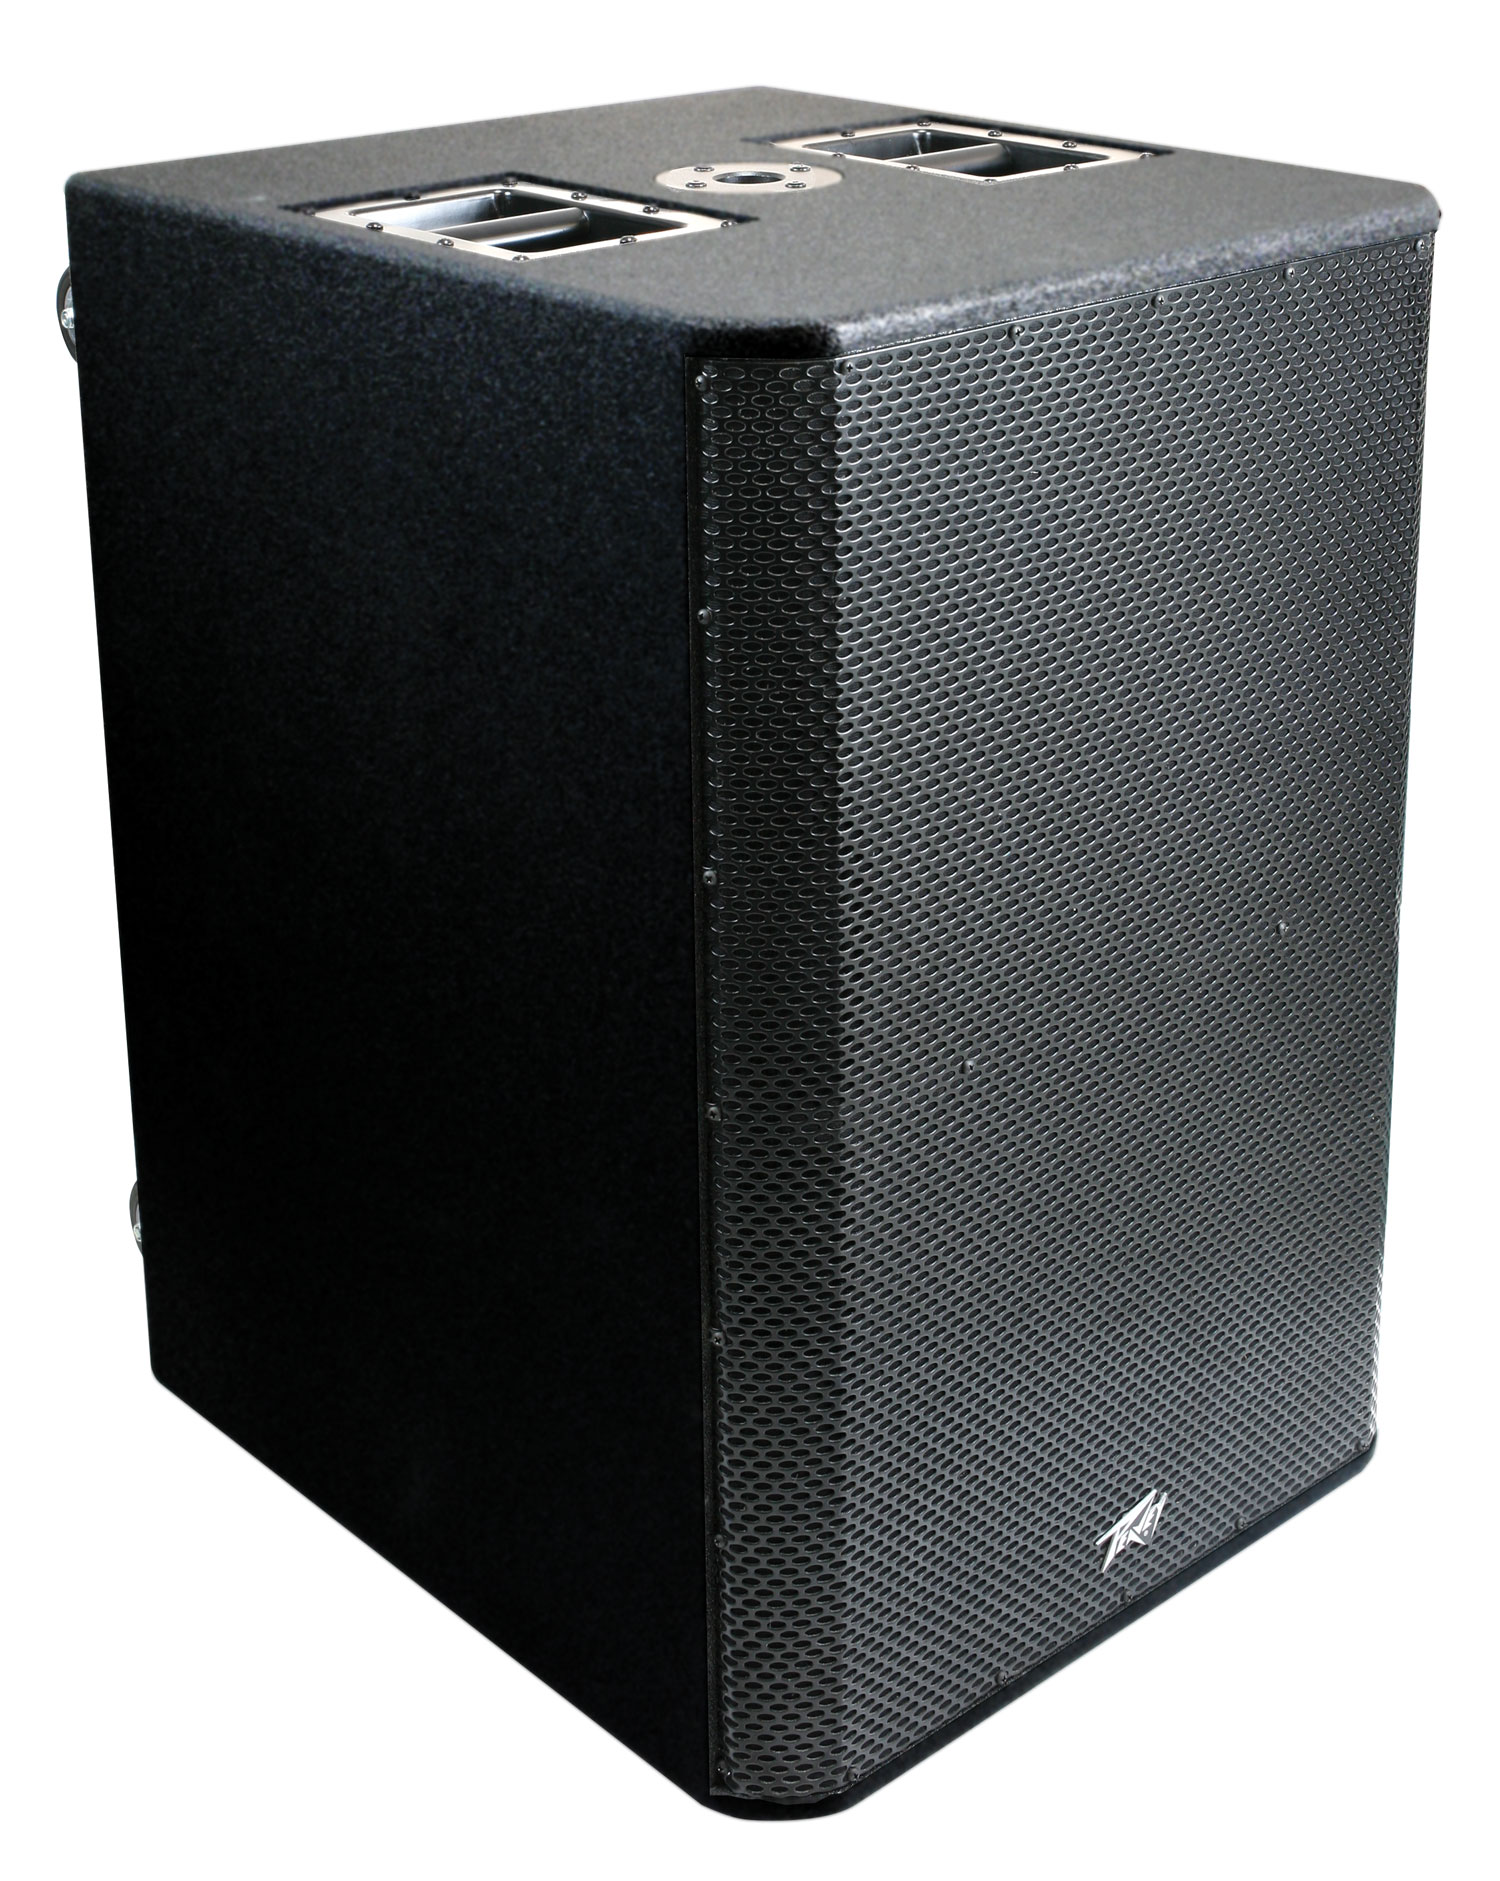 Peavey RBN 215 Powered Subwoofer